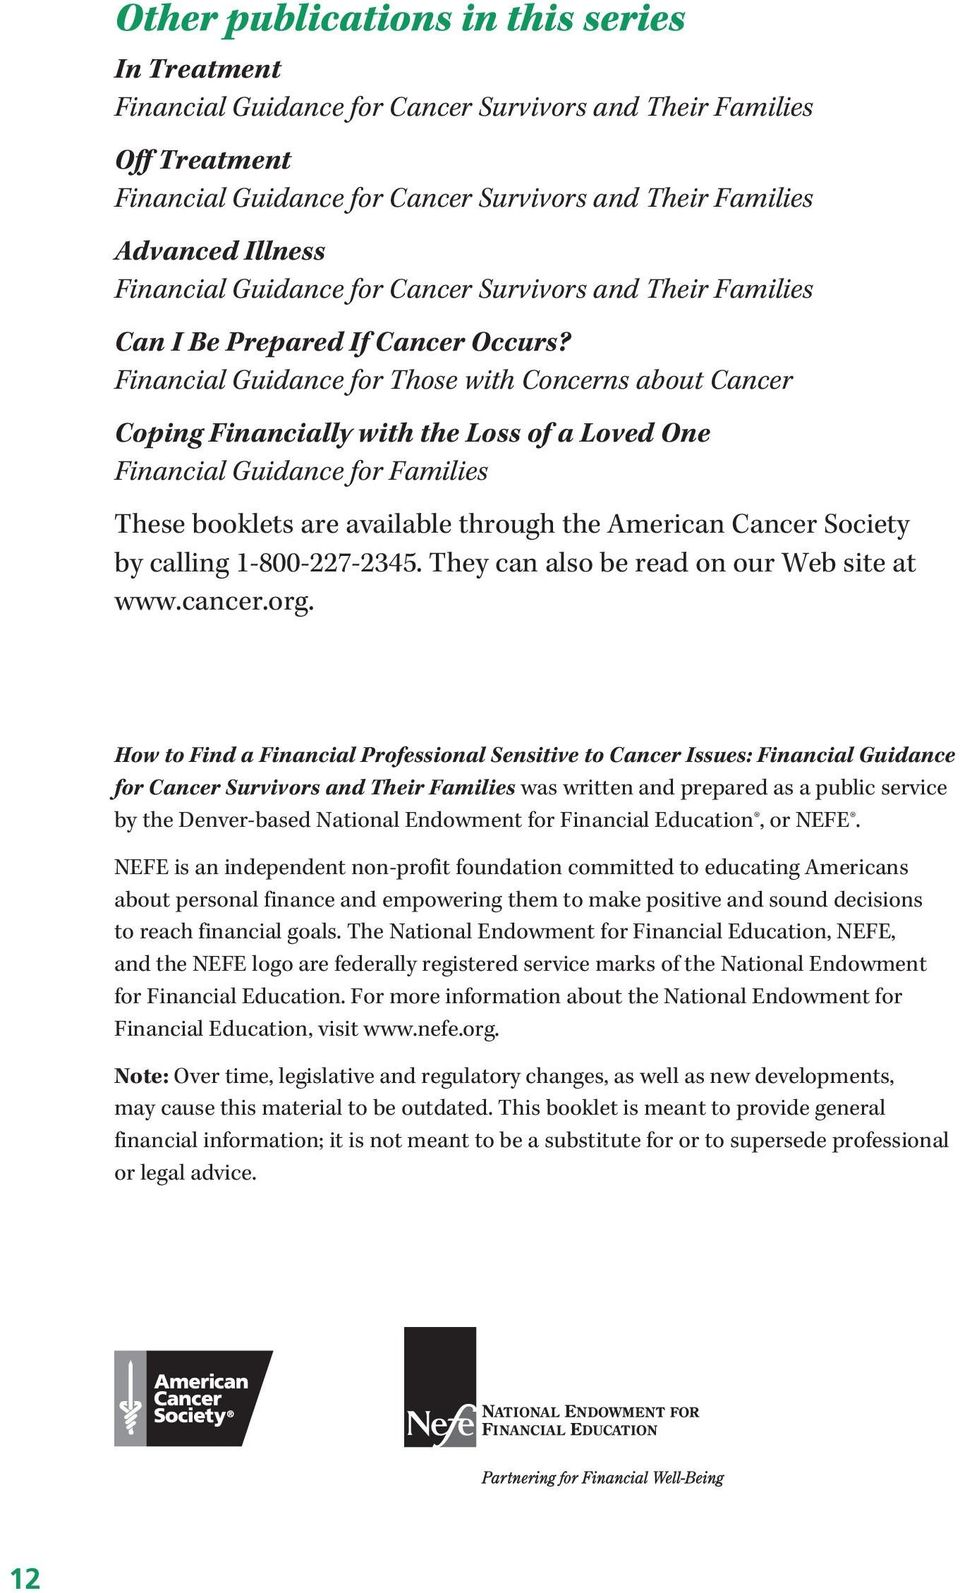 Financial Guidance for Those with Concerns about Cancer Coping Financially with the Loss of a Loved One Financial Guidance for Families These booklets are available through the American Cancer